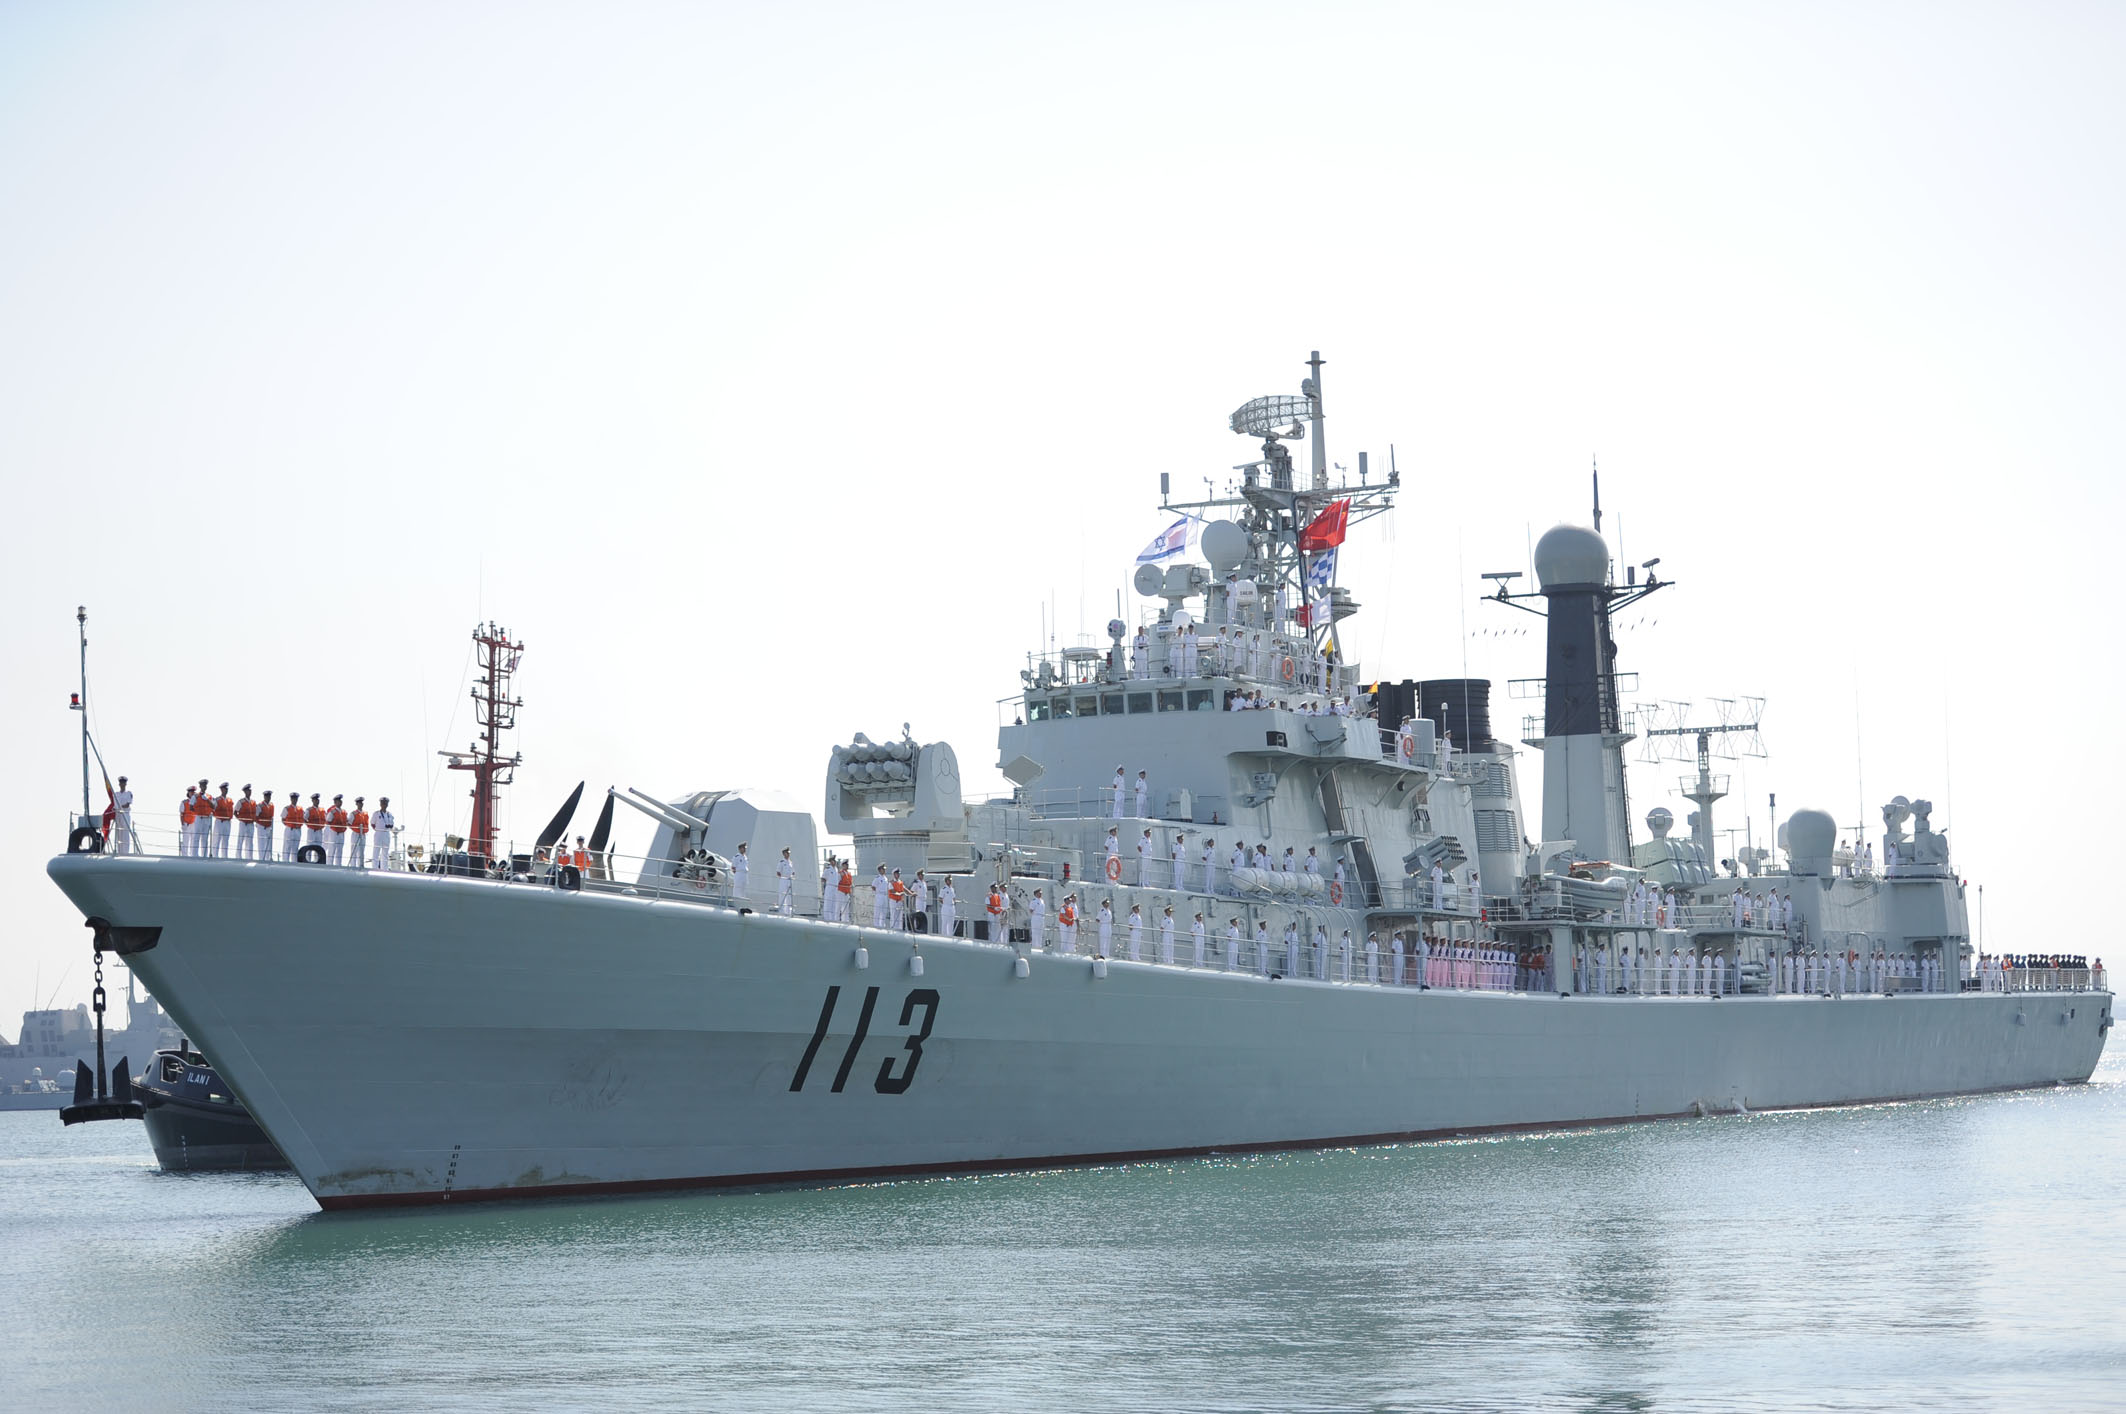 File:Flickr - Israel Defense Forces - 20 Years of Cooperation with the Chinese Navy (5).jpg - Wikimedia Commons